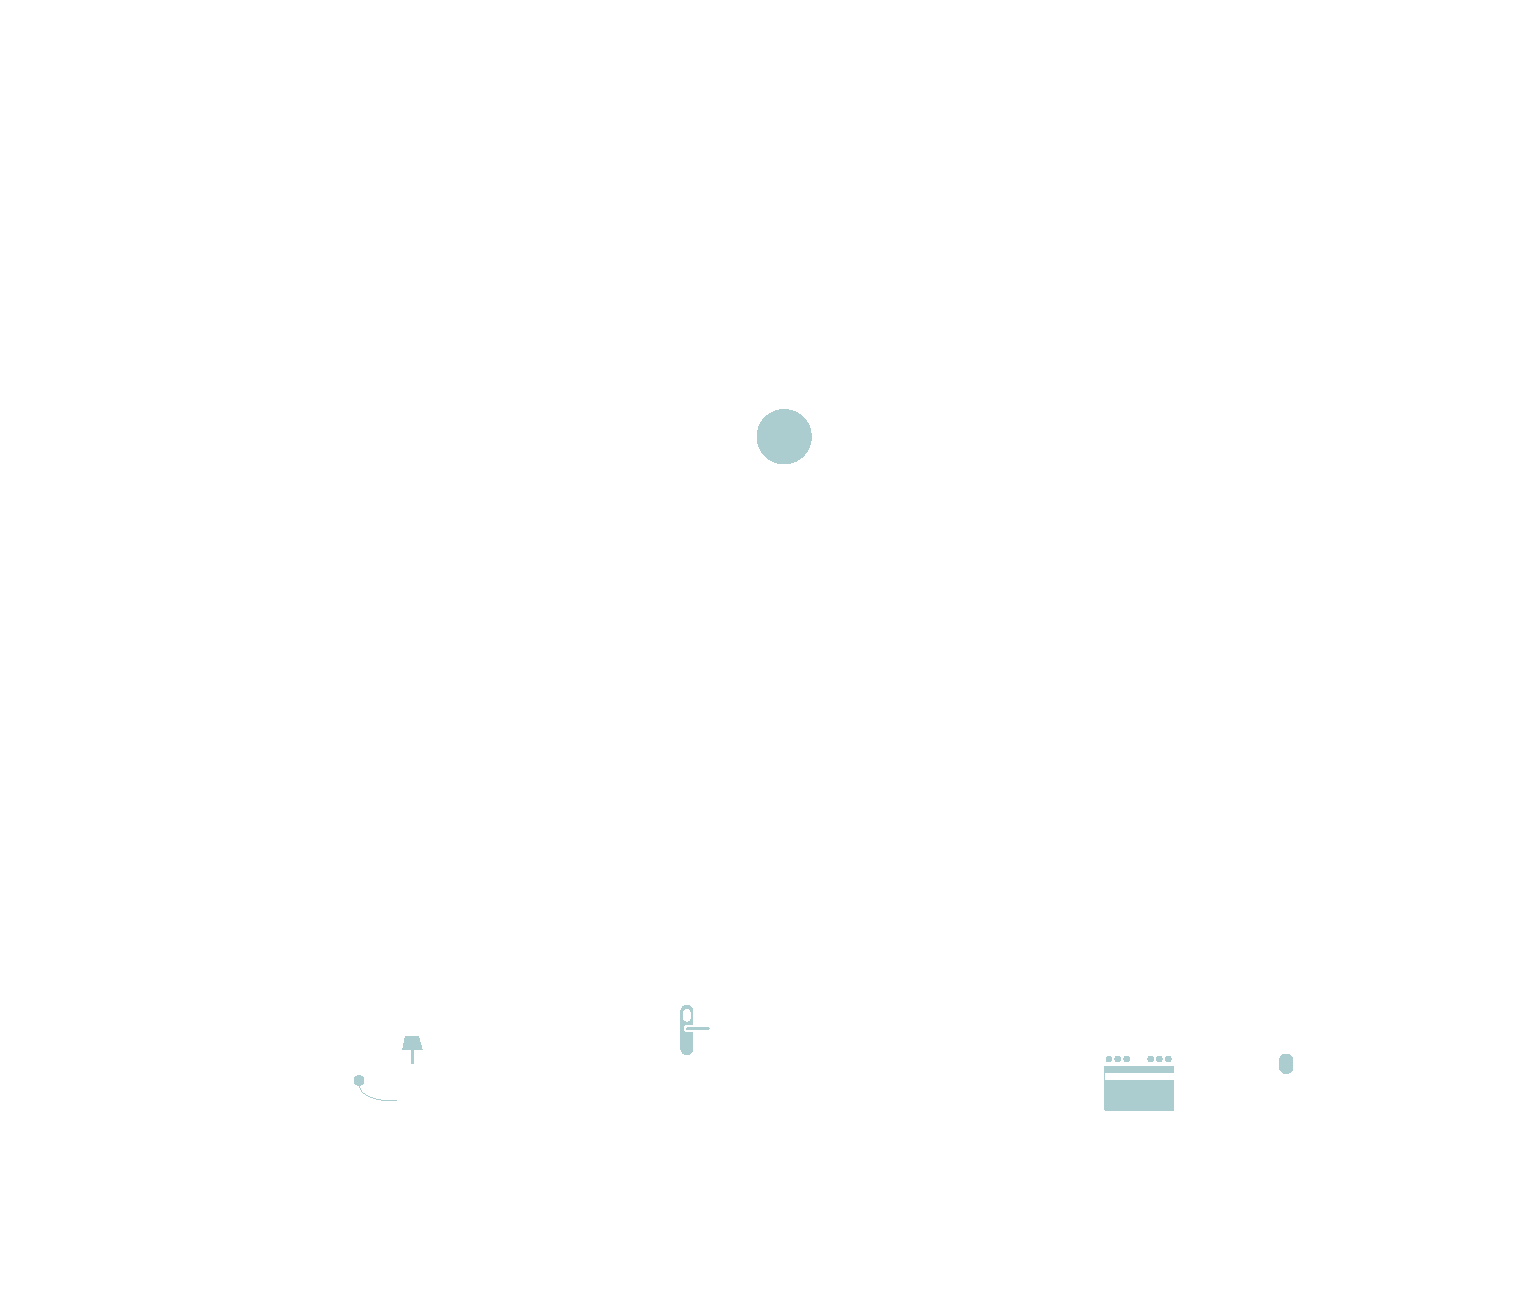 outline of the inside of a house with alarm, cooker, front door handle and smart plug highlighted in green